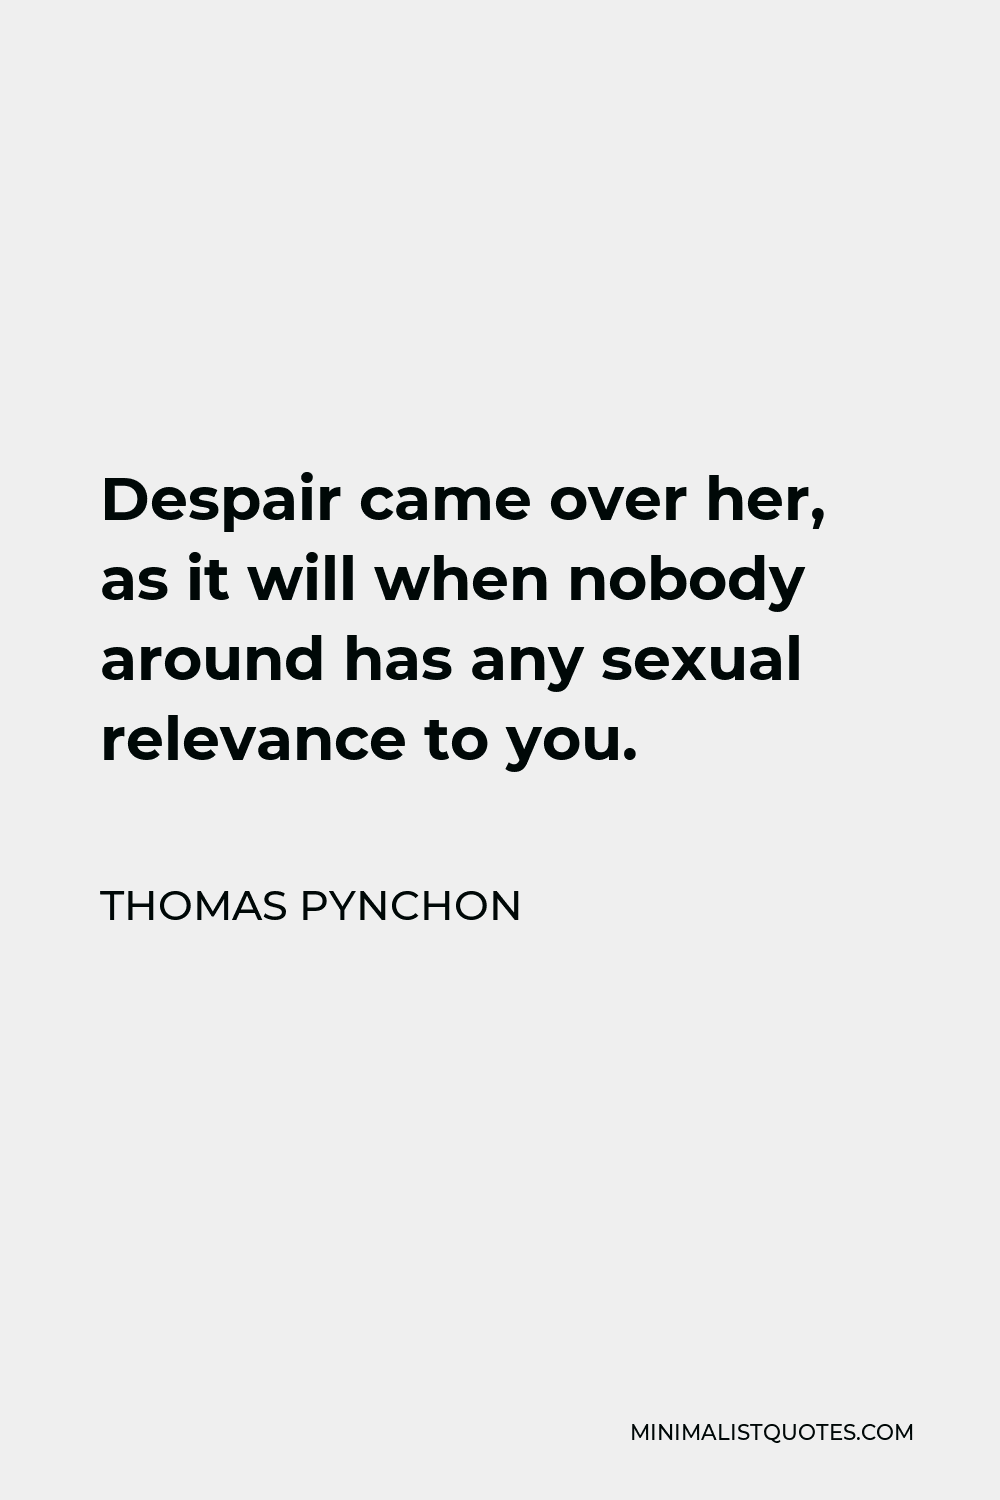 Thomas Pynchon Quote - Despair came over her, as it will when nobody around has any sexual relevance to you.